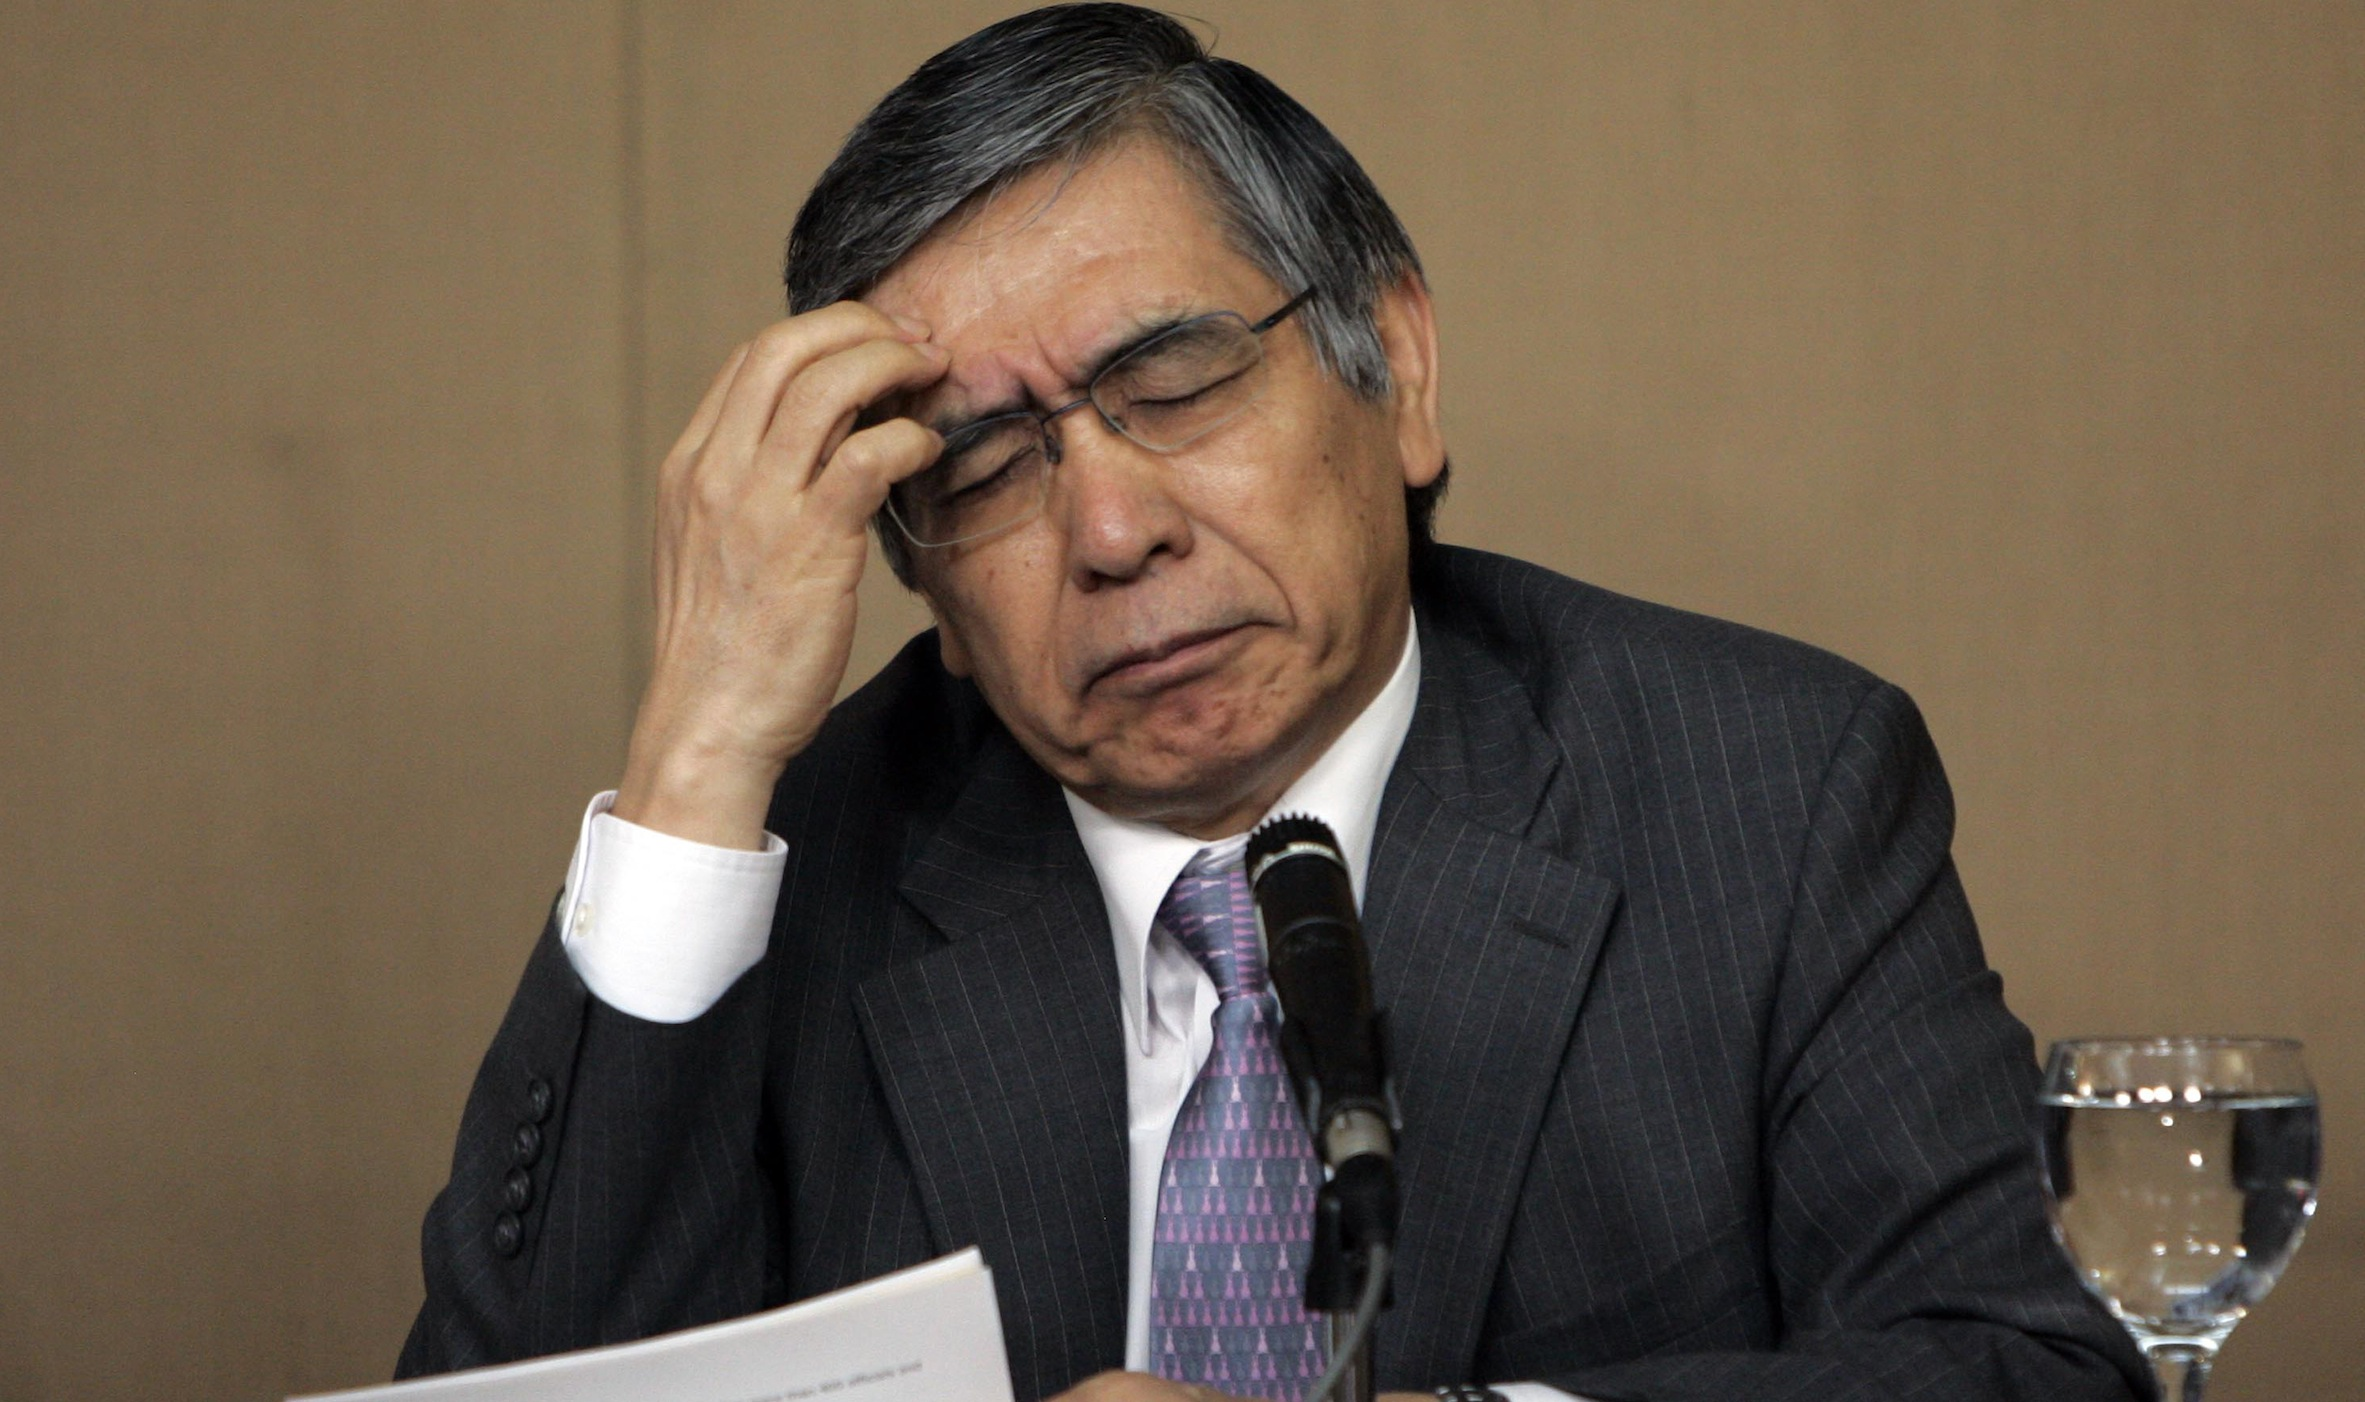 Asian Development Bank of the Philippines President Haruhiko Kuroda reacts during a press conference at the Malacanang palace Thursday, March 1, 2012 in Manila, Philippines. Kuroda commended the adminitration of President Benigno Aquino III for its focus on government reforms and announced the holding of the 45th annual meeting of the Board of Governors of ADB in the country. (AP Photo/Pat Roque)